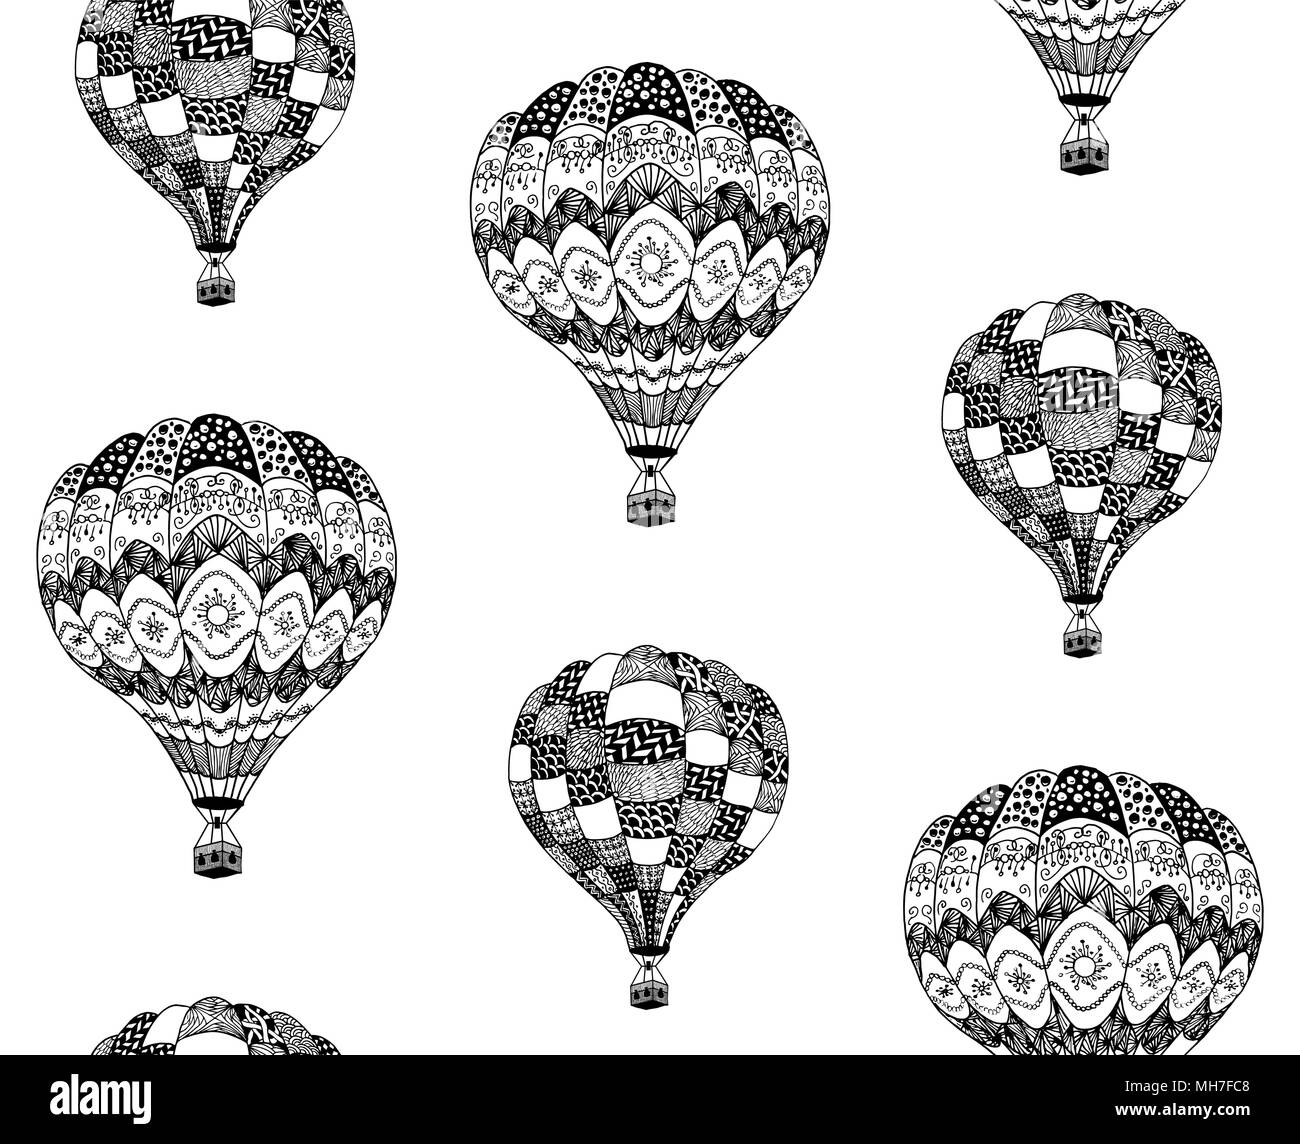 Vector seamless pattern of hot air balloon in zentangle style